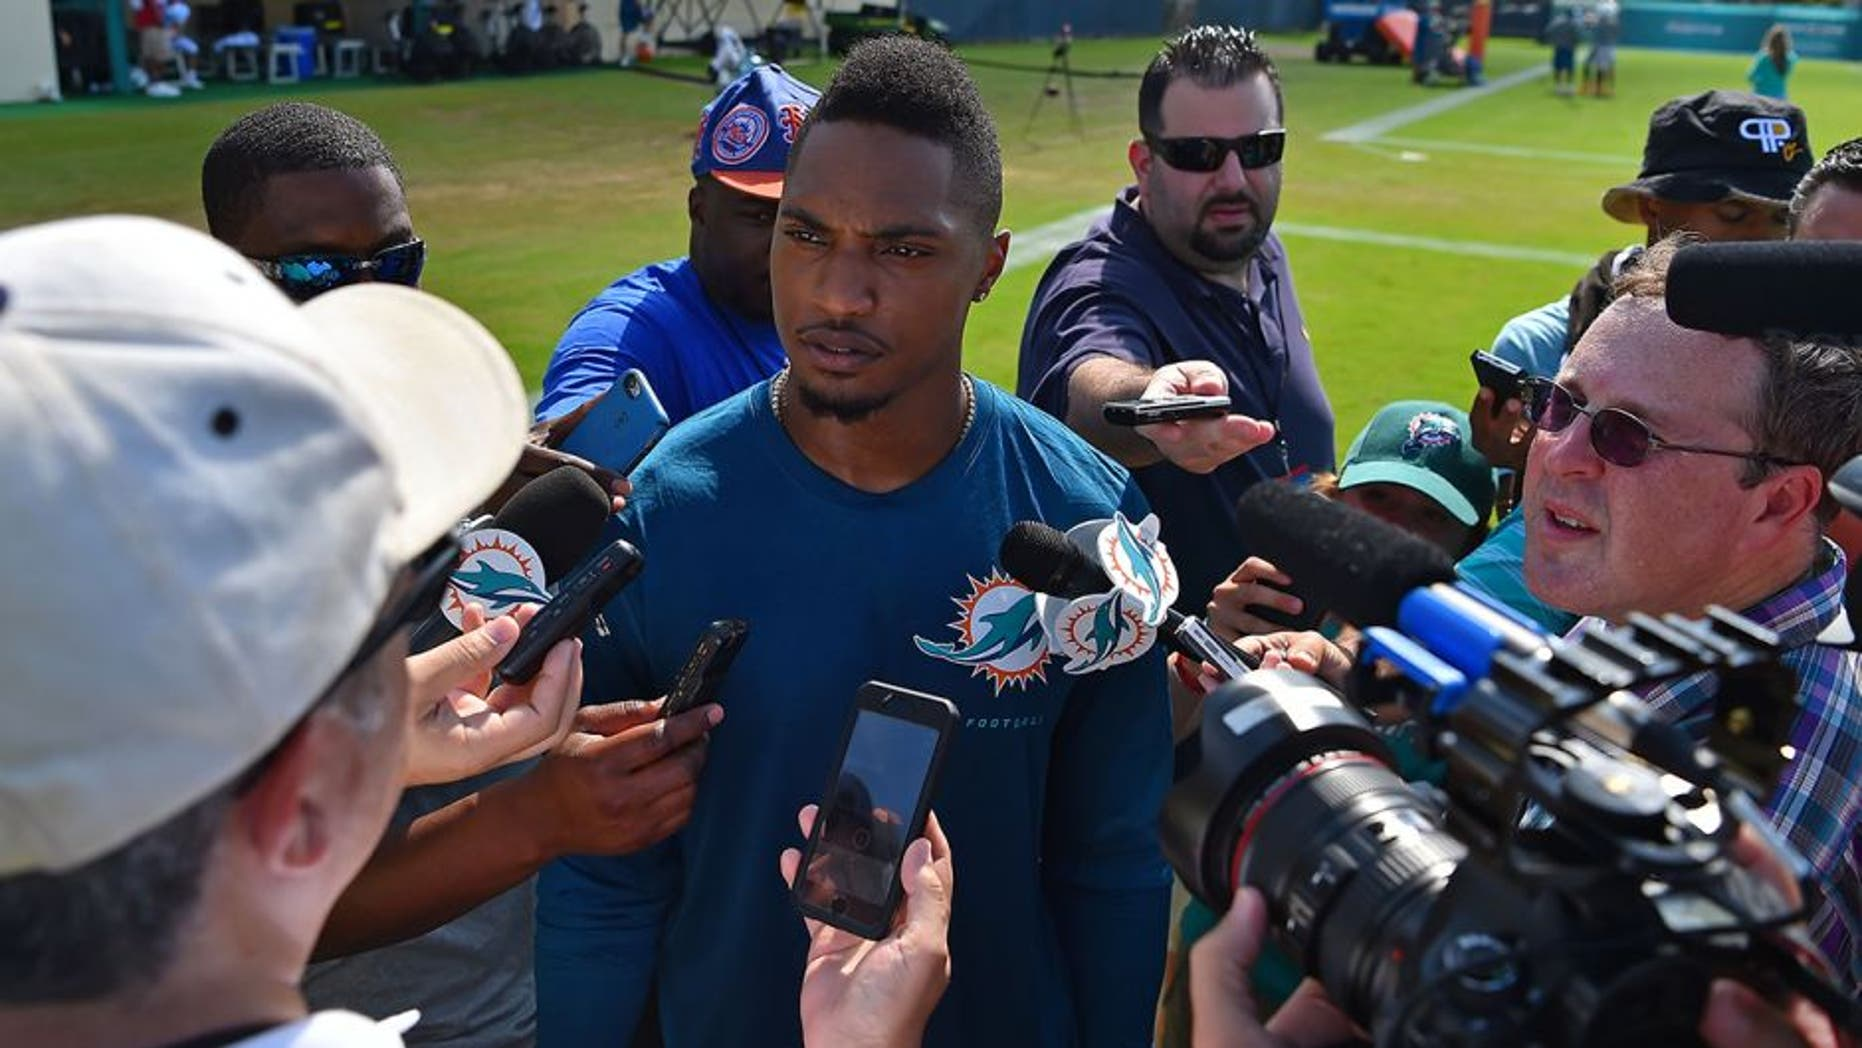 Aug 10, 2016; Miami Gardens, FL, USA; Miami Dolphins cornerback Chris Culliver speaks with the media after practice at Baptist Health Training Facility. Mandatory Credit: Jasen Vinlove-USA TODAY Sports